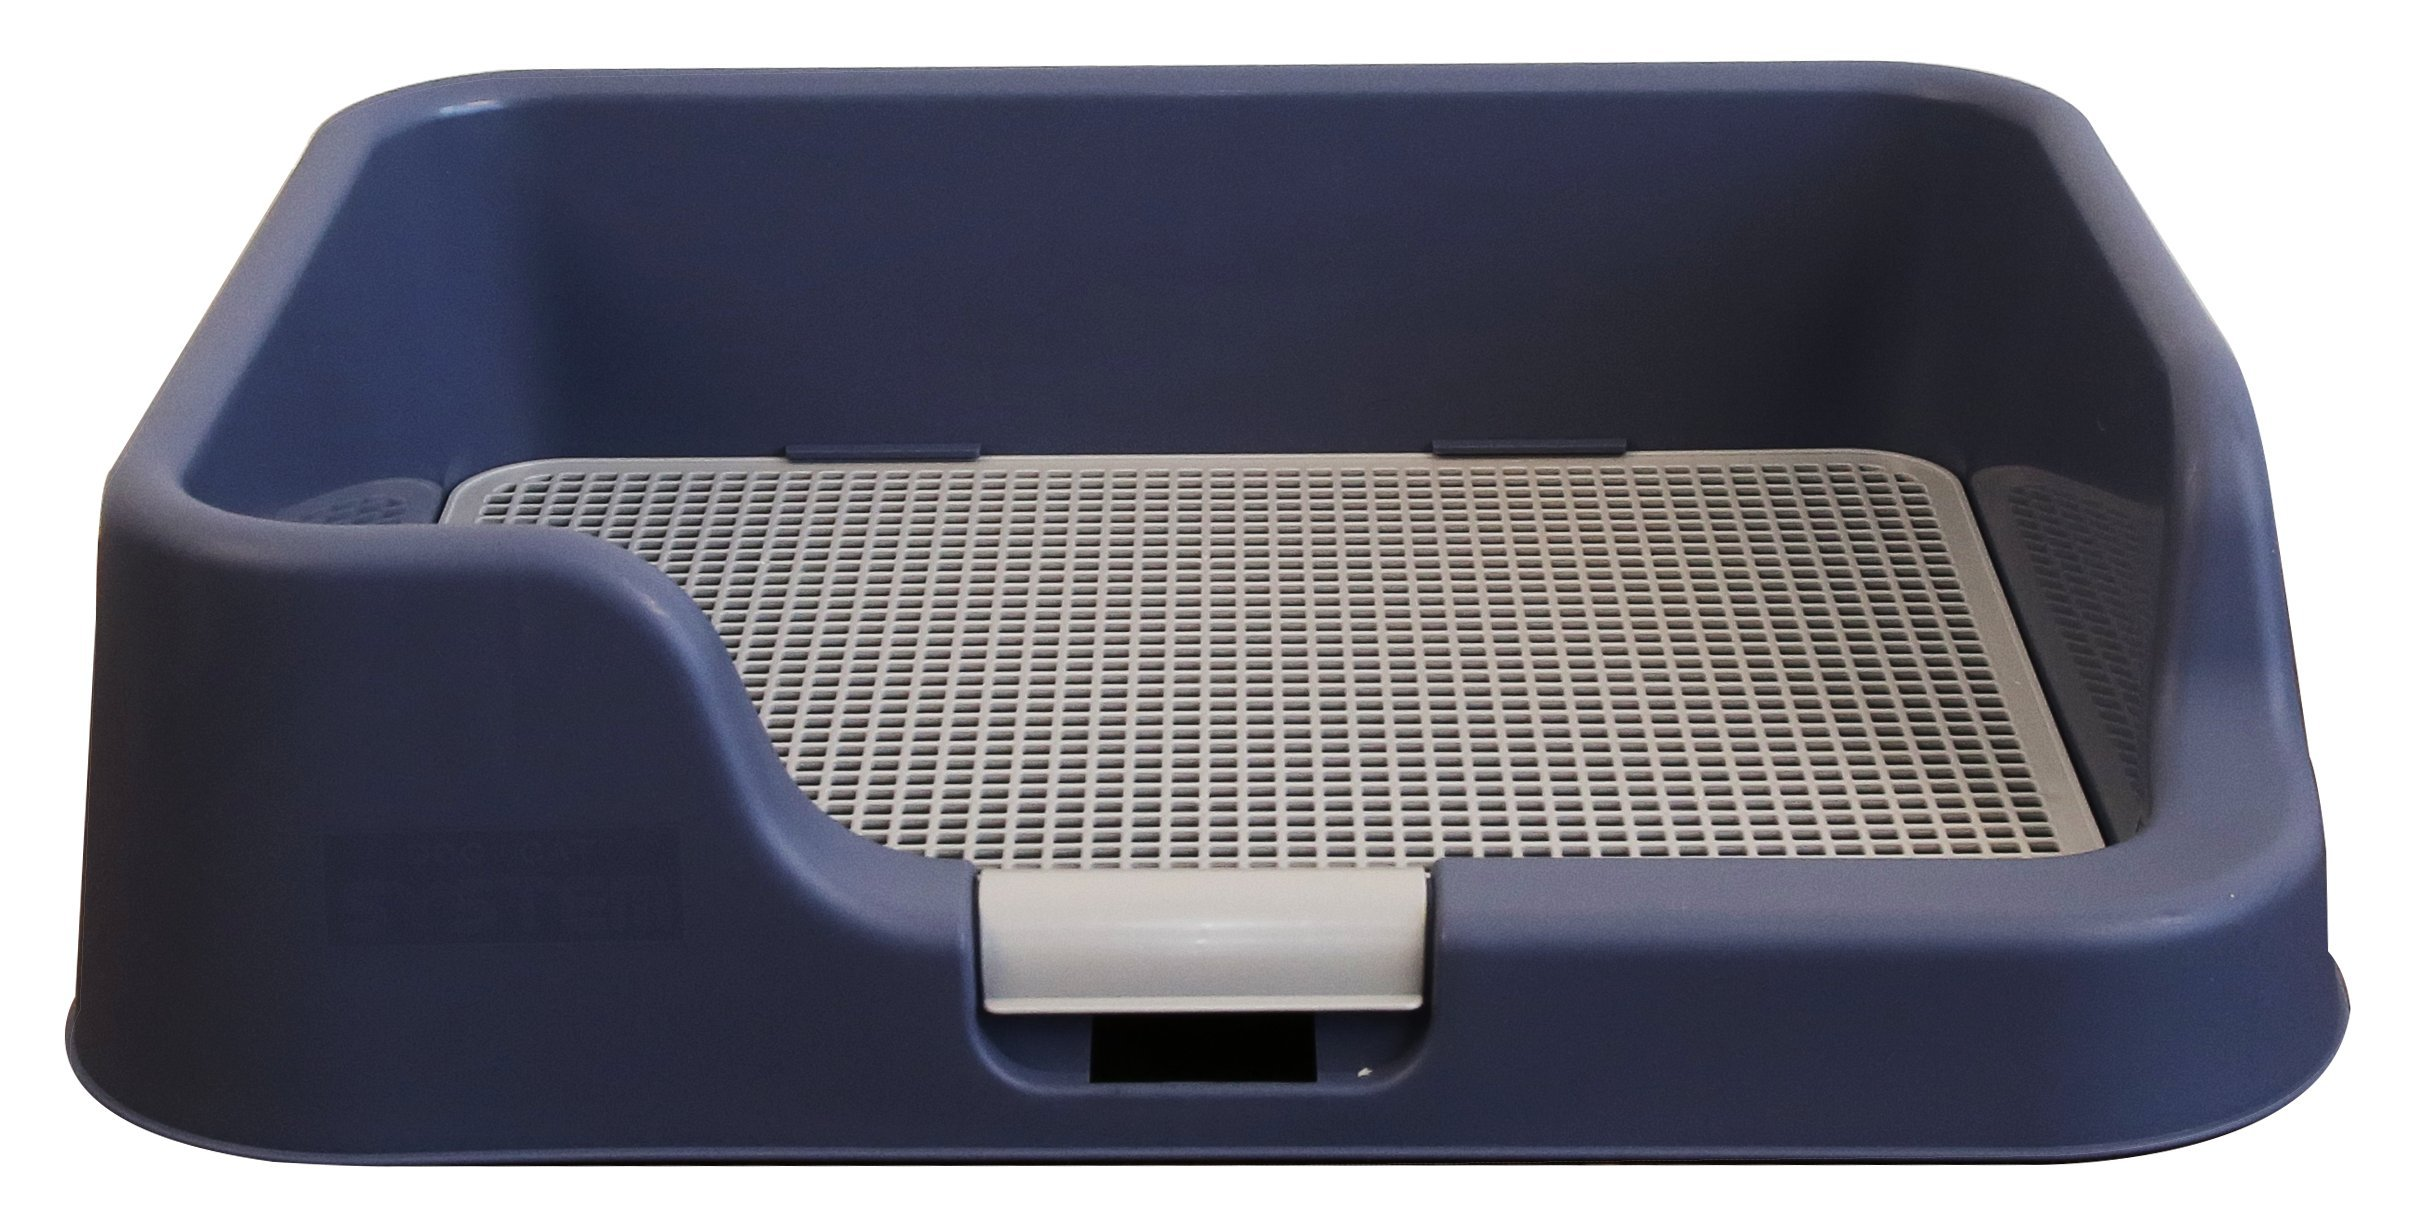 [DogCharge] Indoor Dog Potty Tray - With Protection Wall Every Side For No Leak, Spill, Accident - Keep Paws Dry And Floors Clean! 100% Satisfaction (Blue) by PS Korea